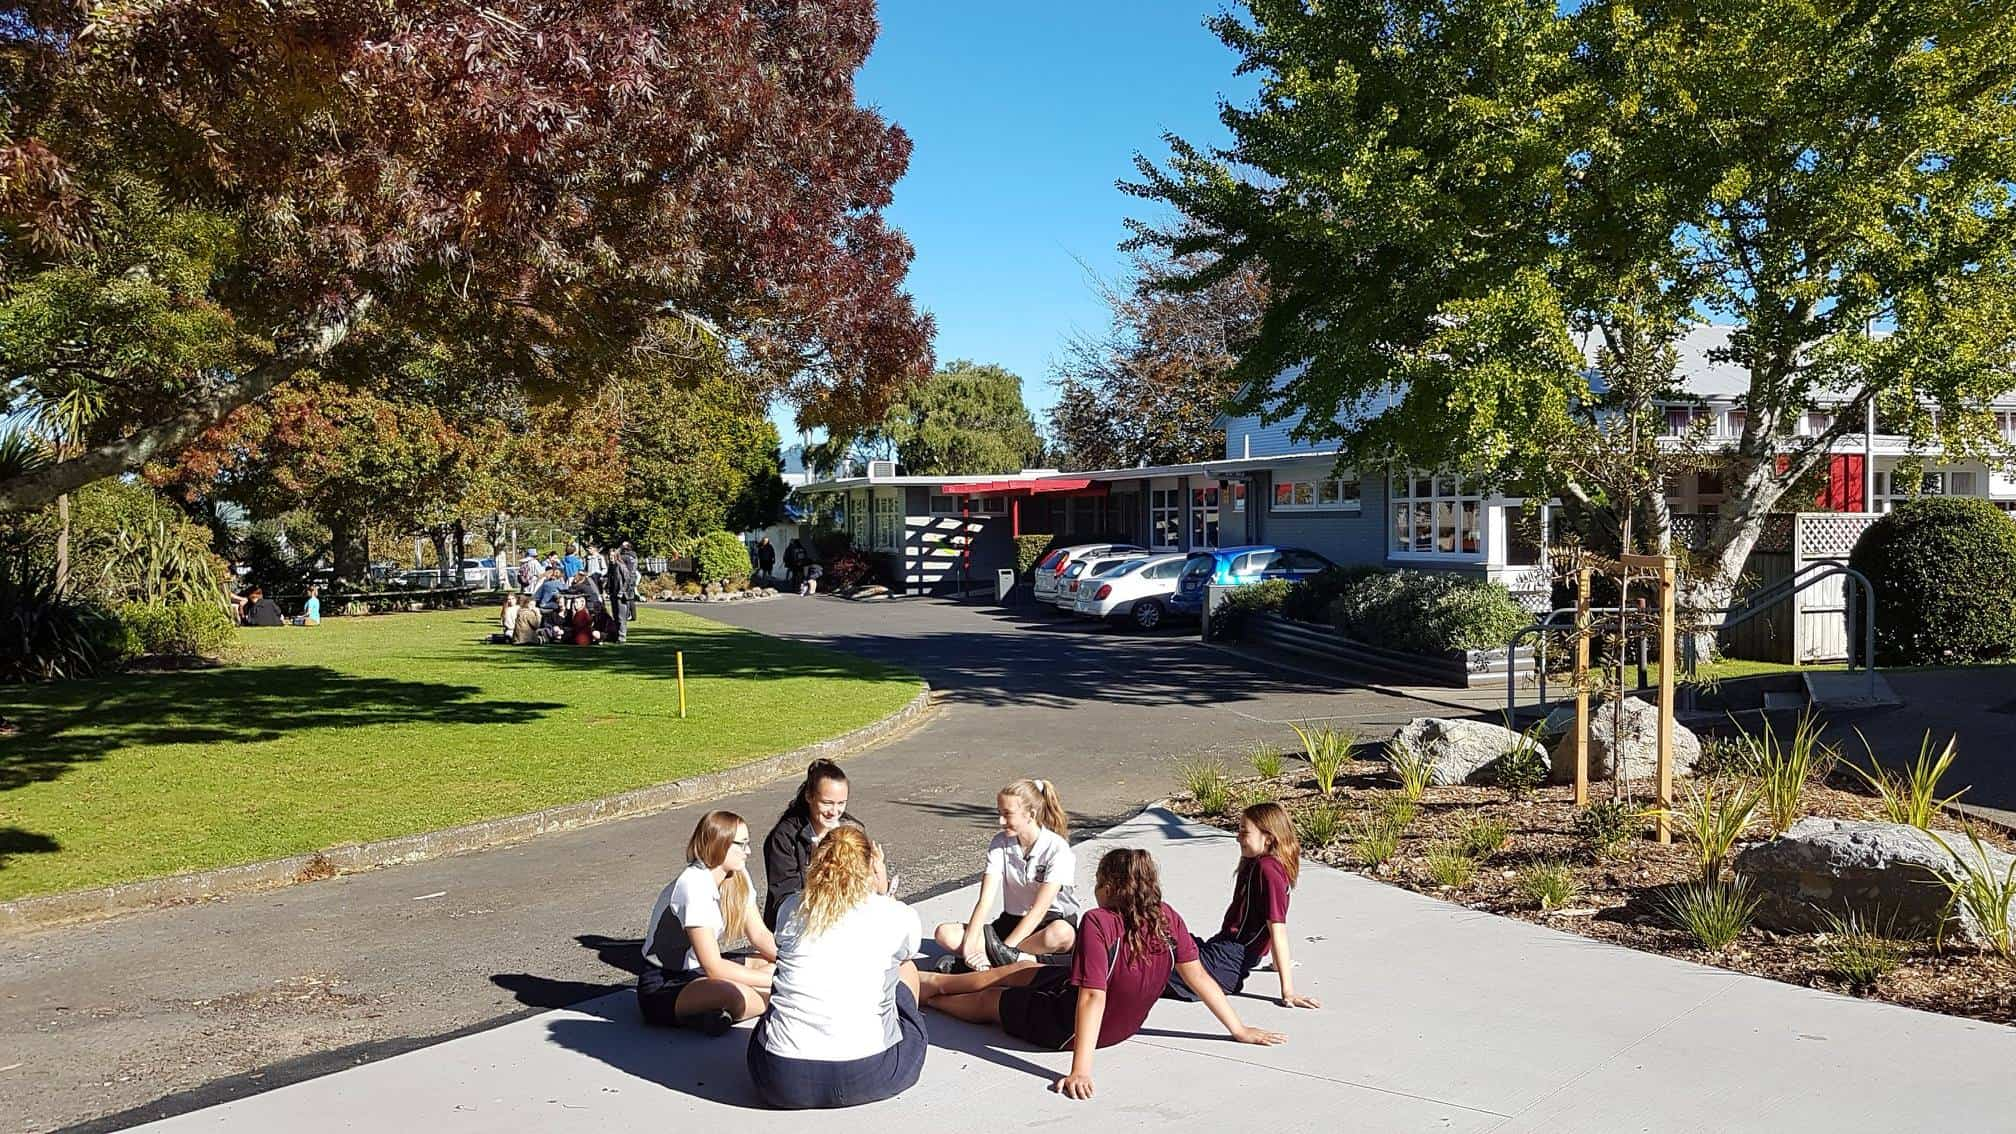 School New Zealand | Schools in New Zealand